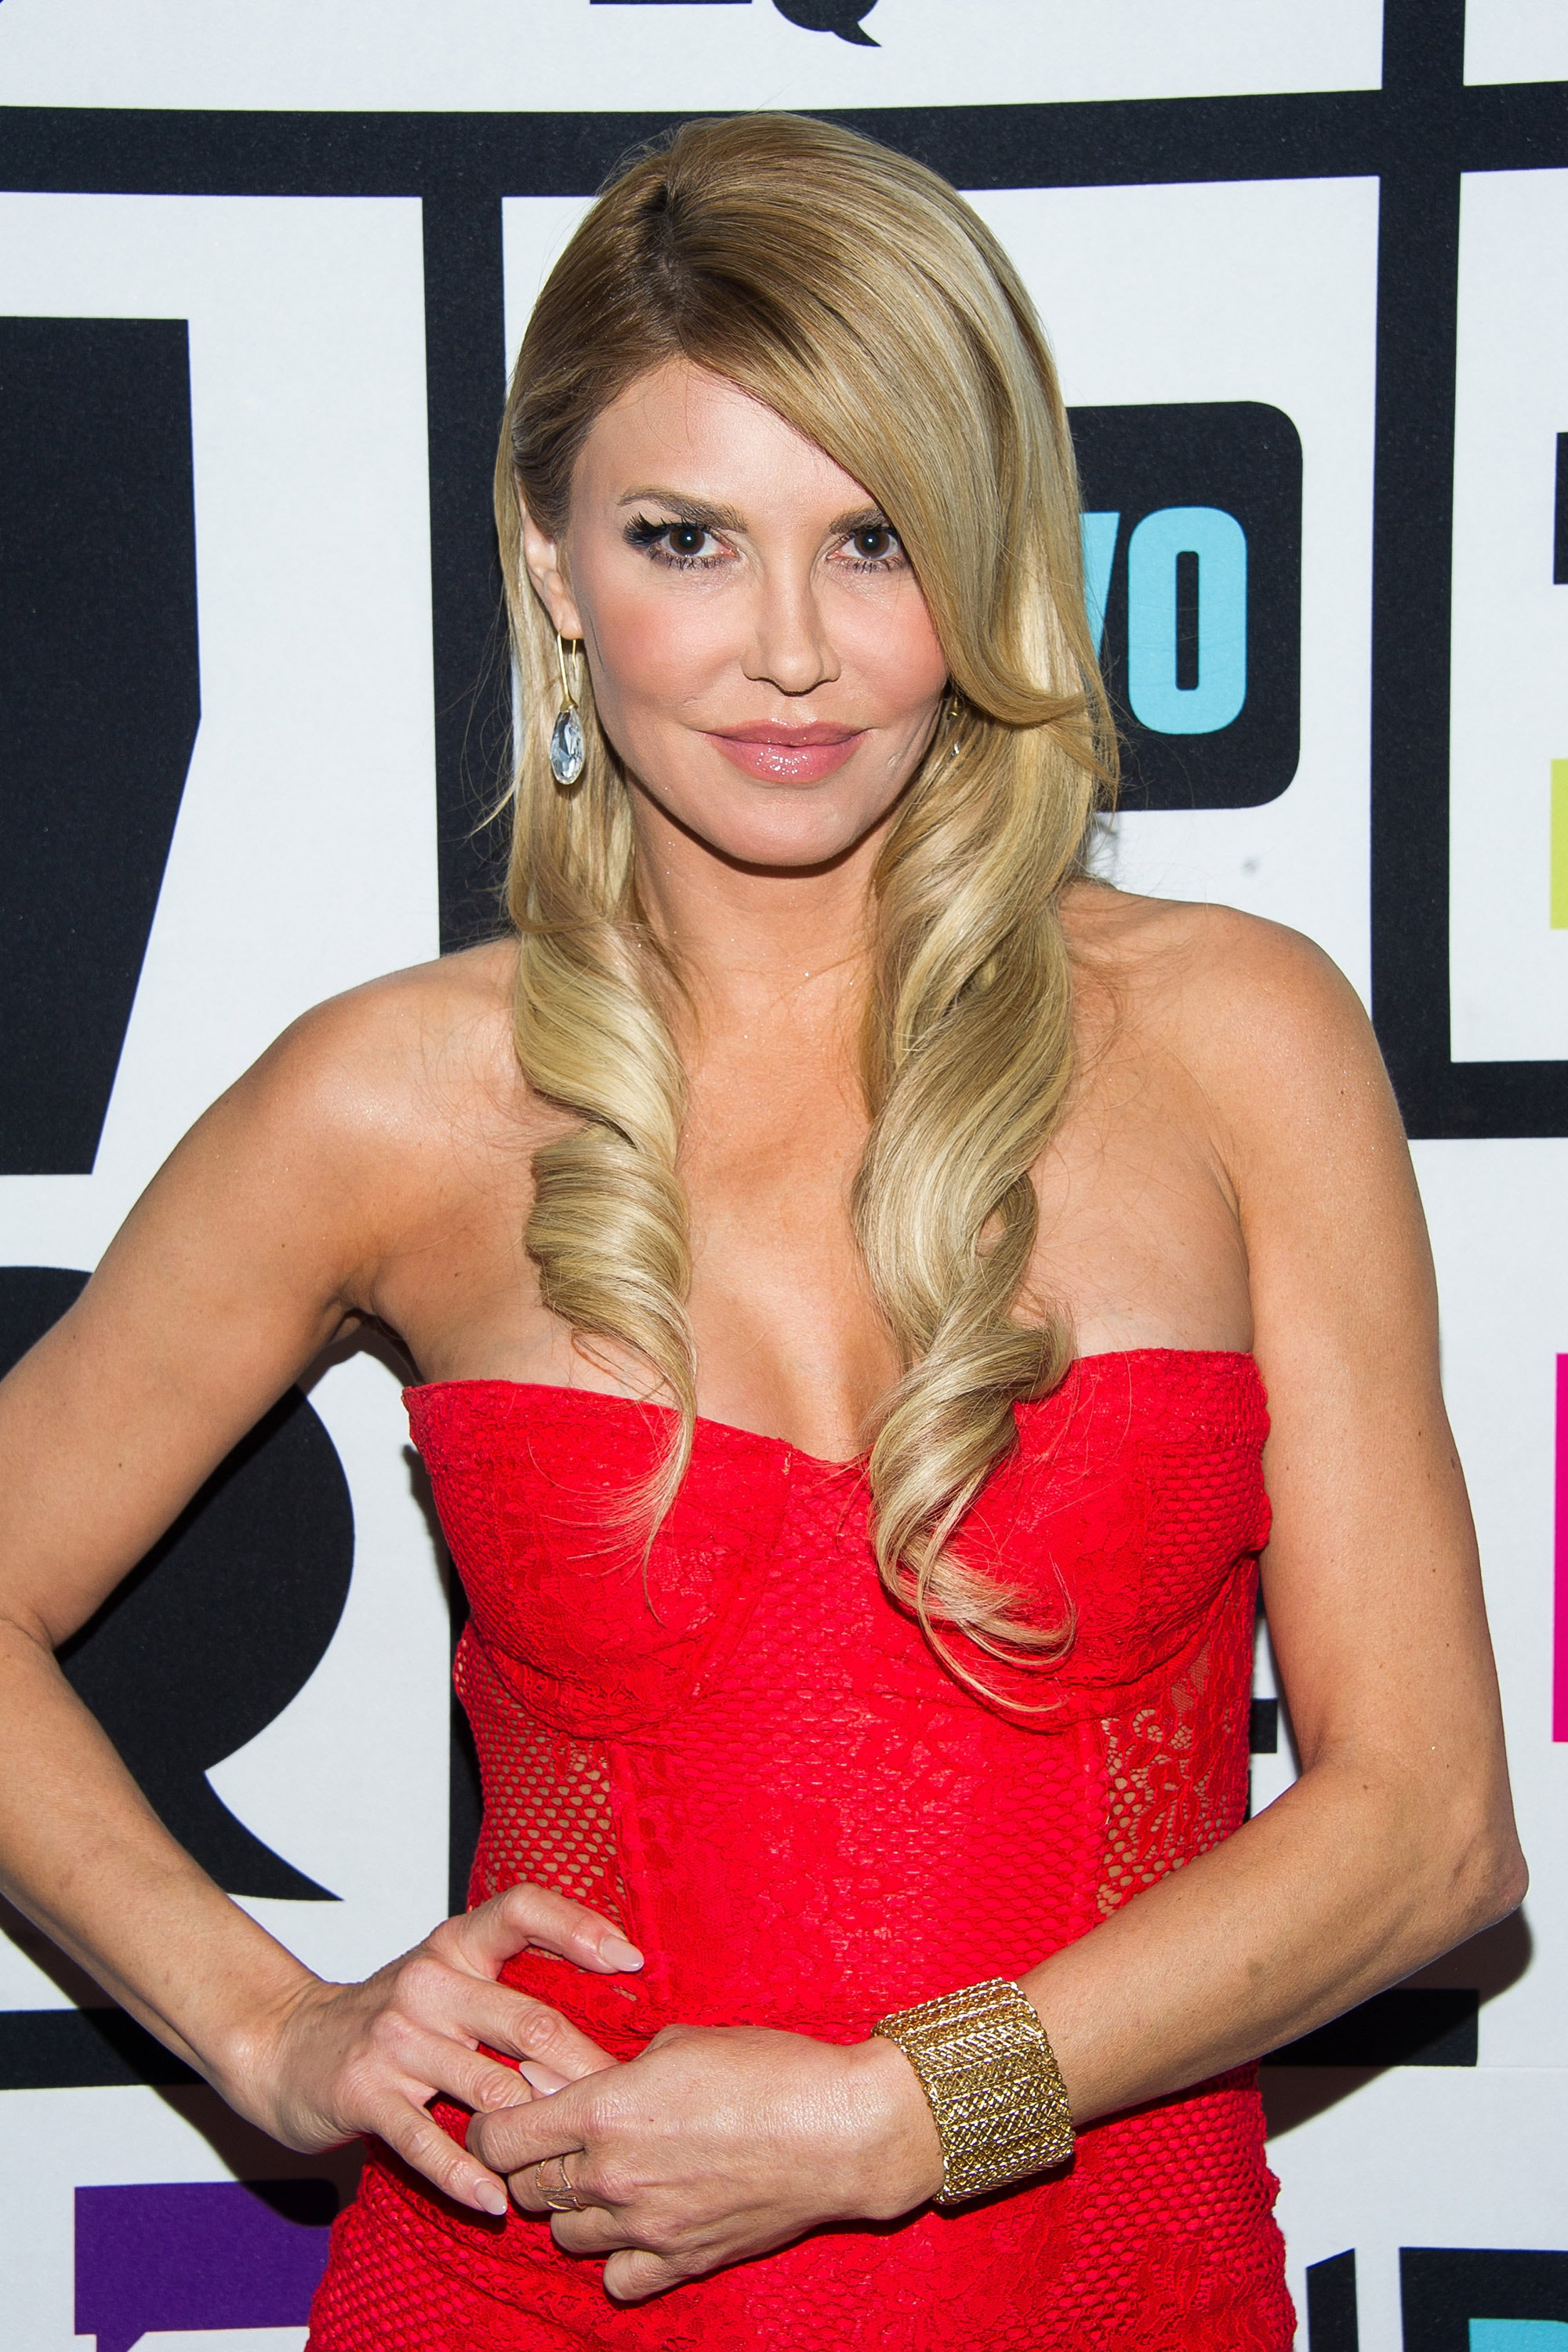 brandi glanville plastic surgery photo - 1